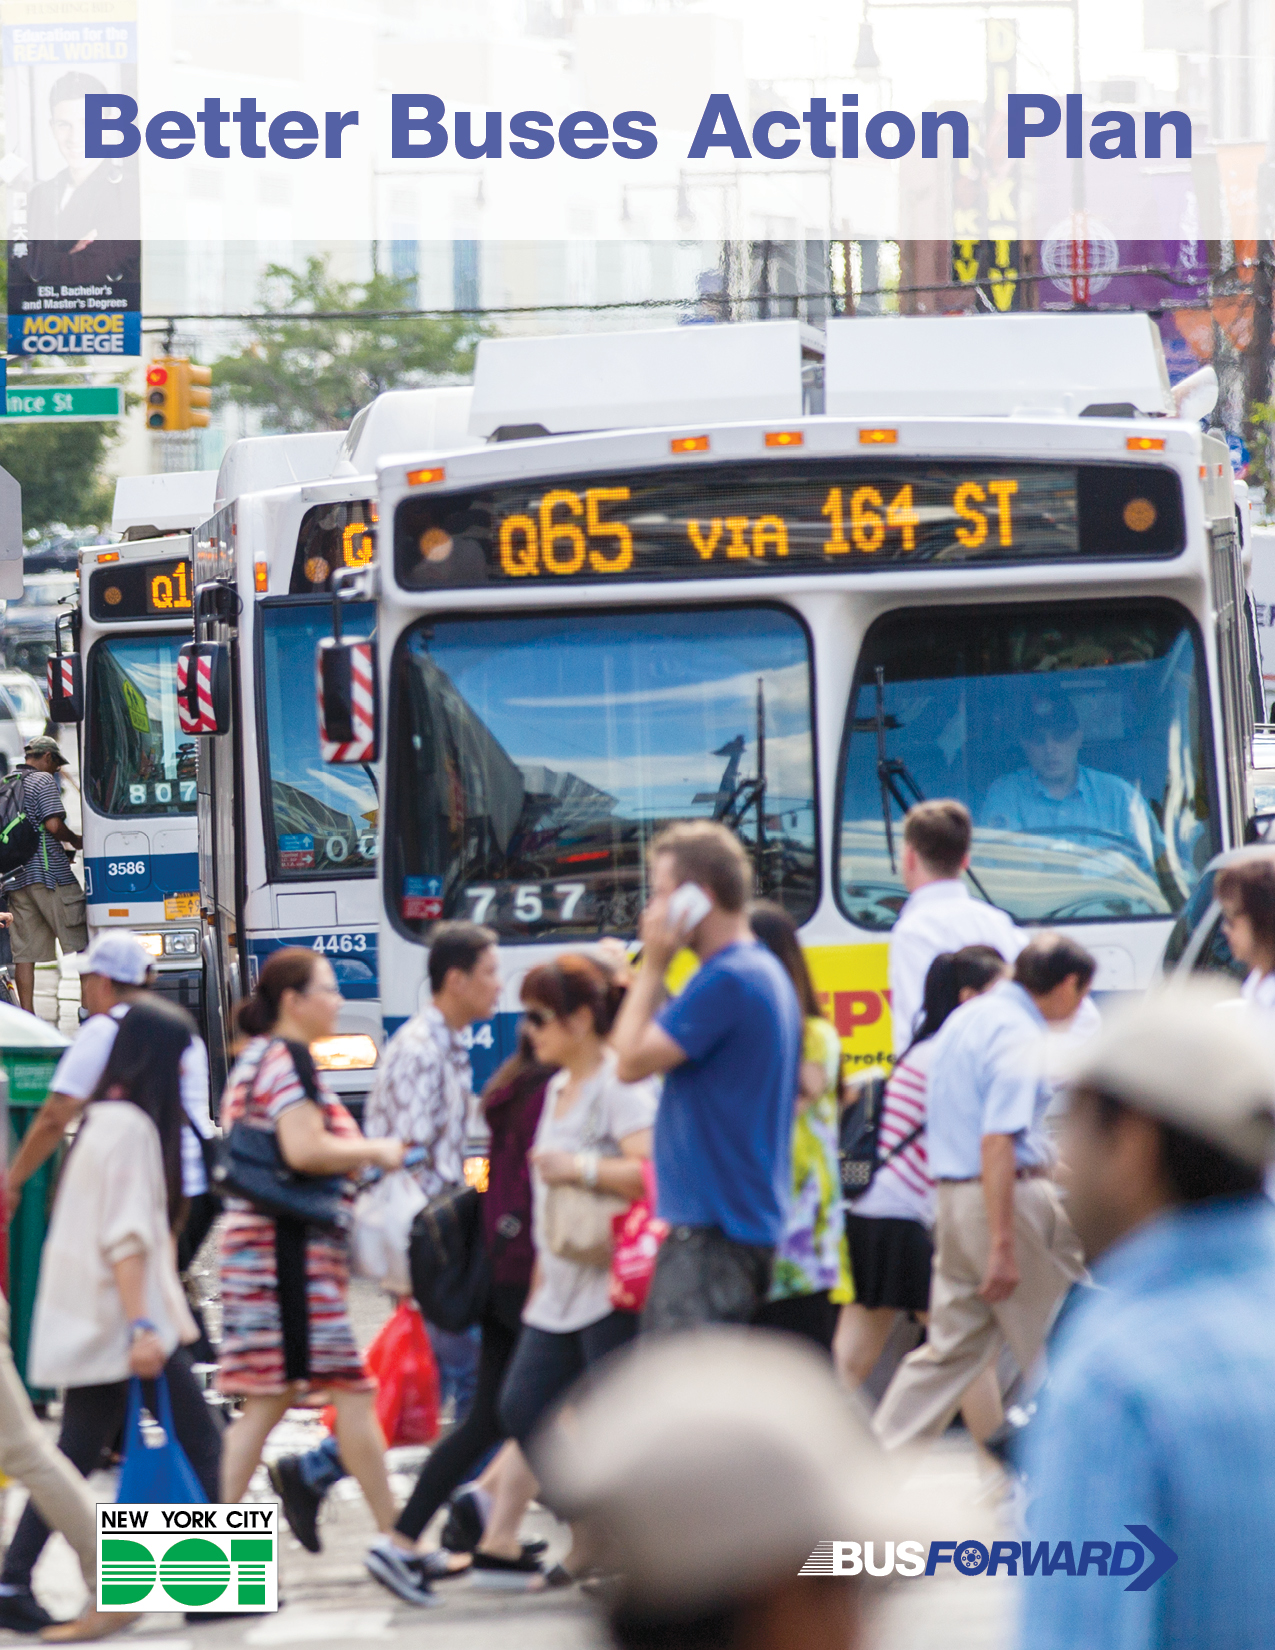 Better Buses Action Plan